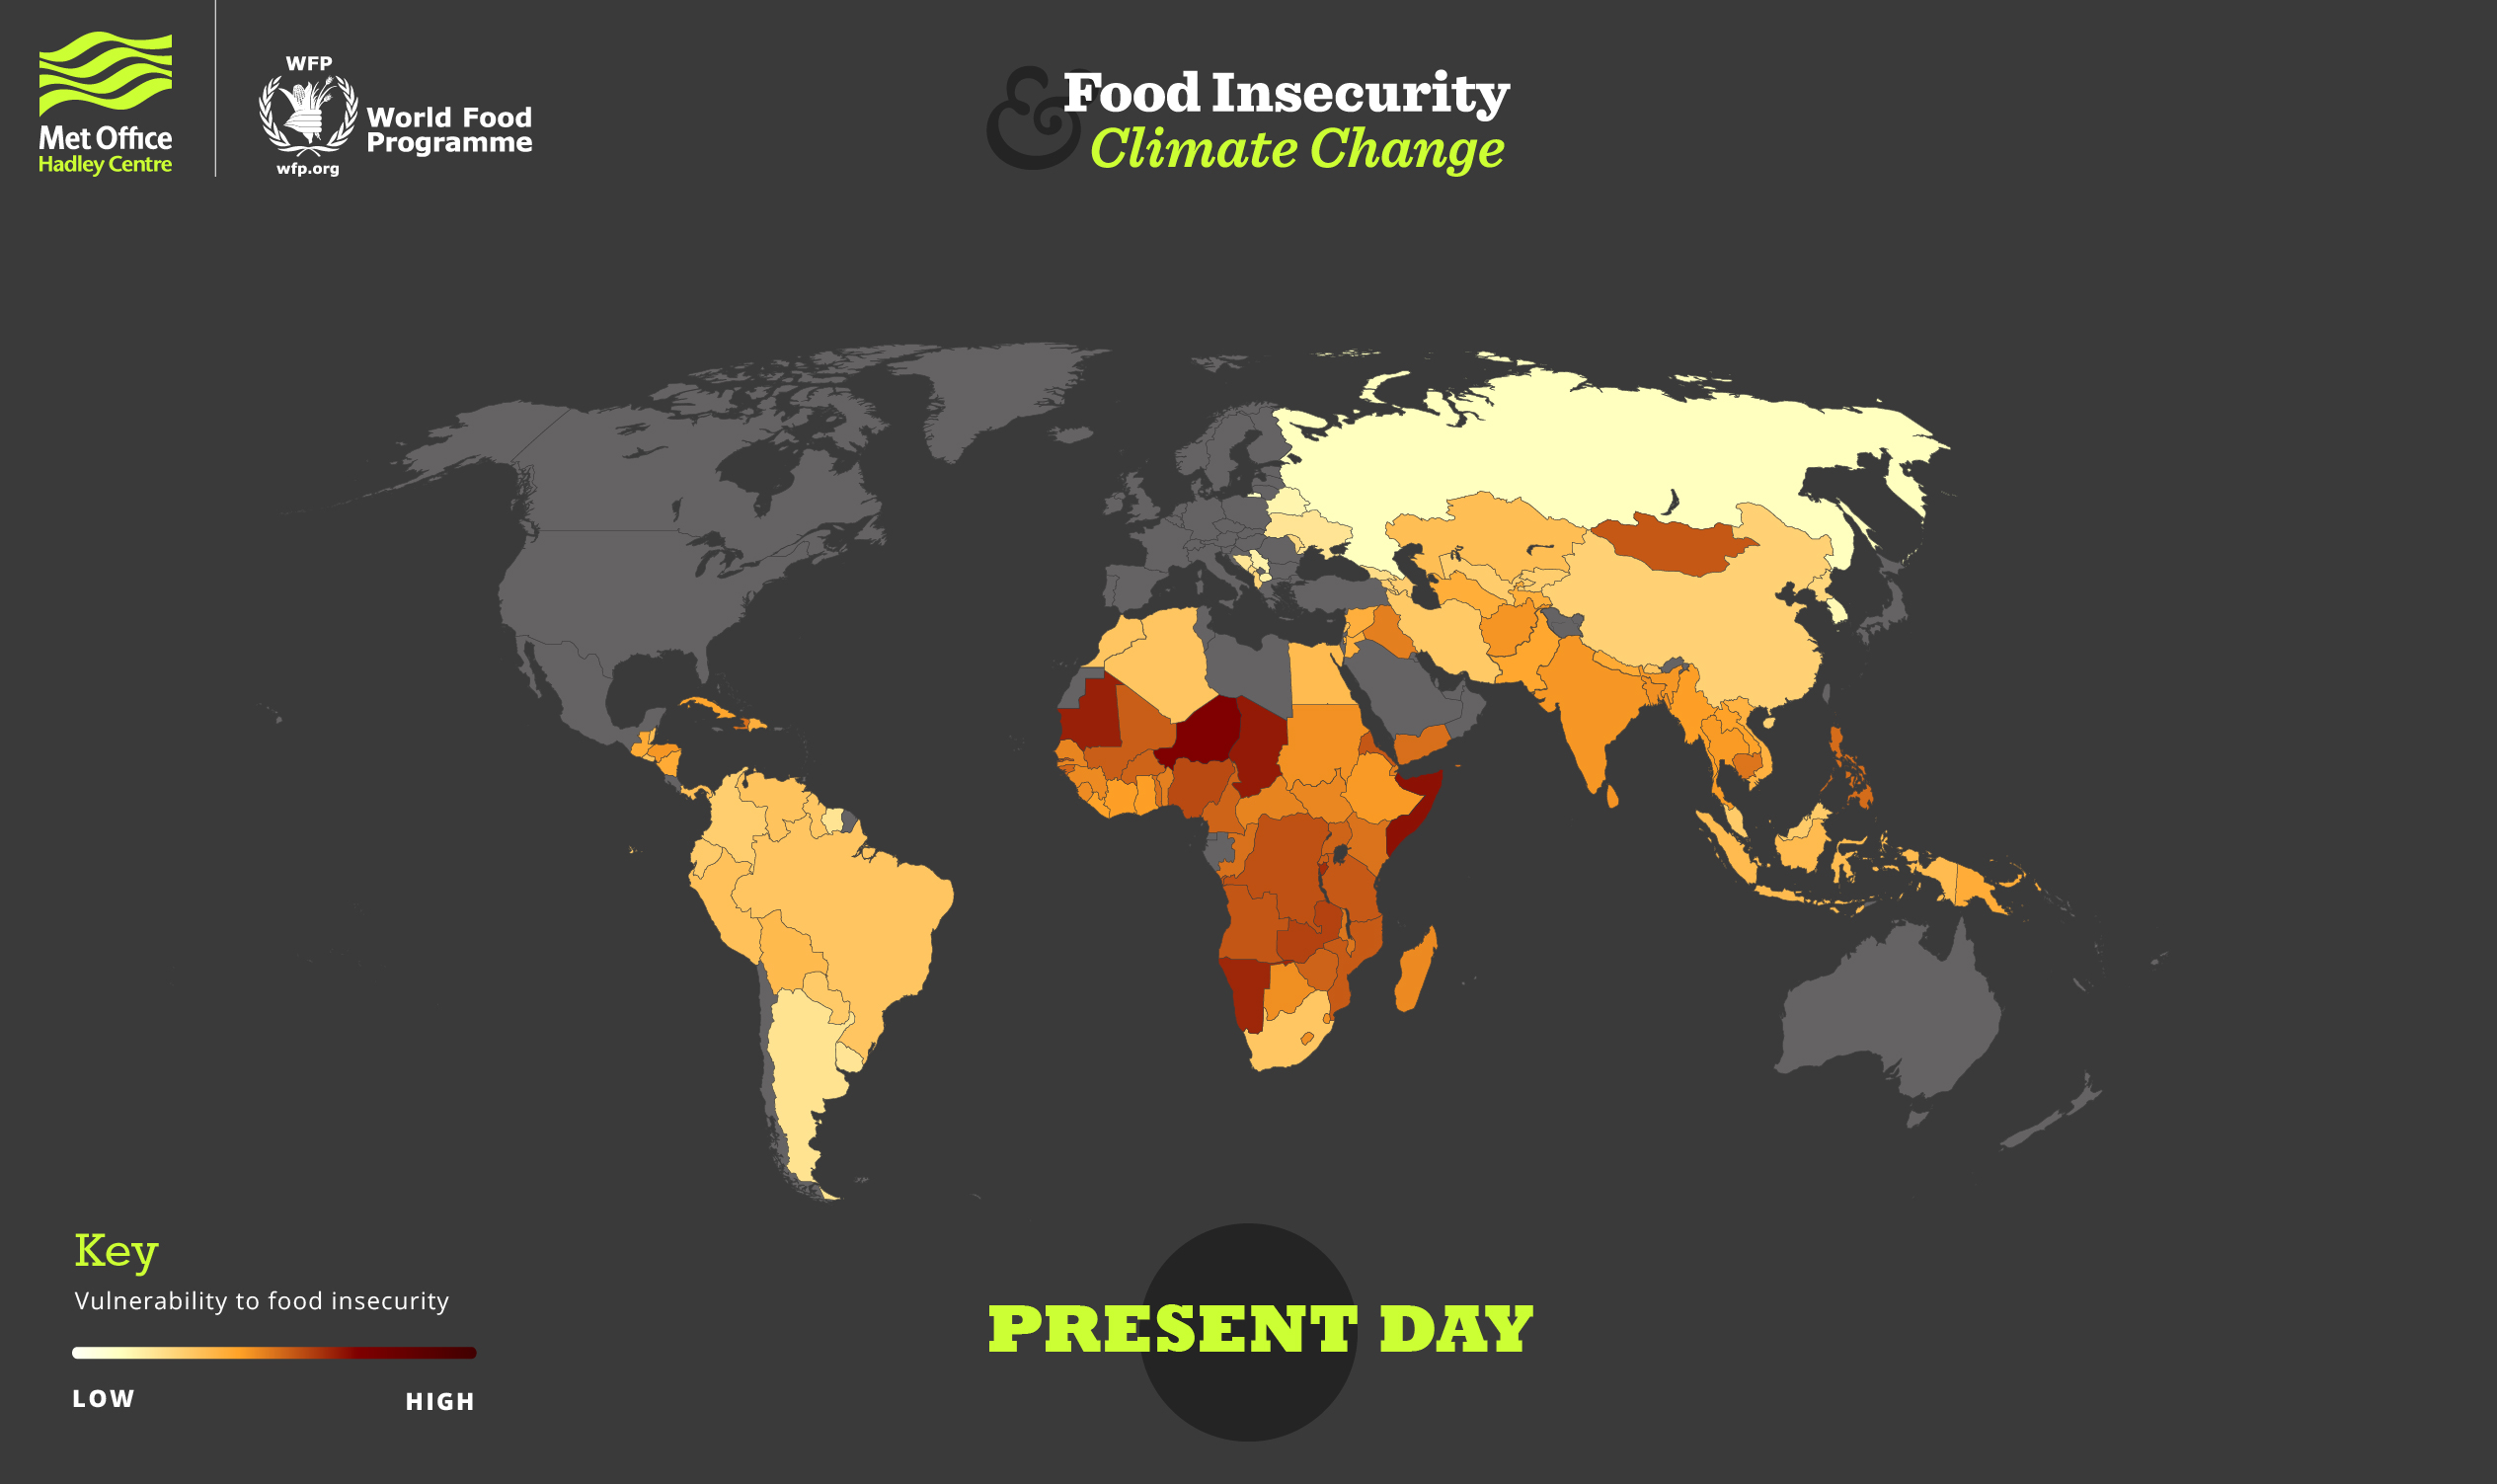 Current situation of world food insecurity